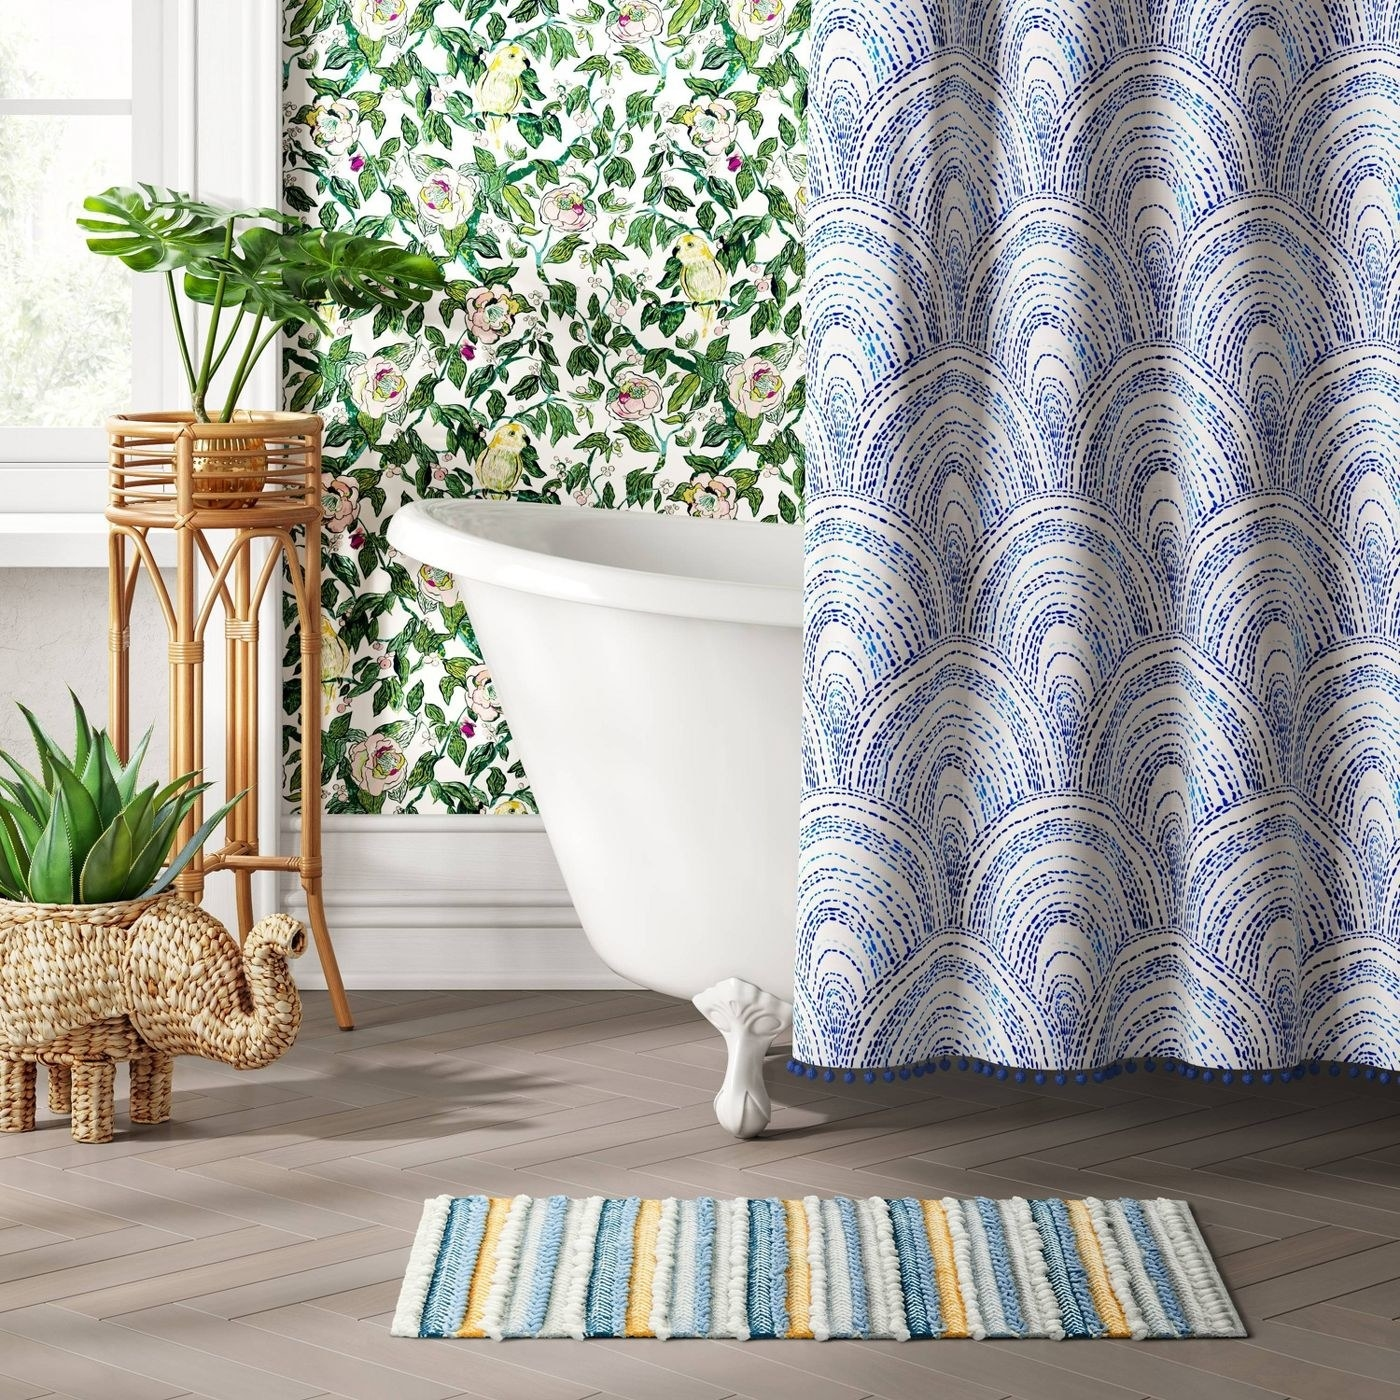 blue, white, and yellow rug next to a tub